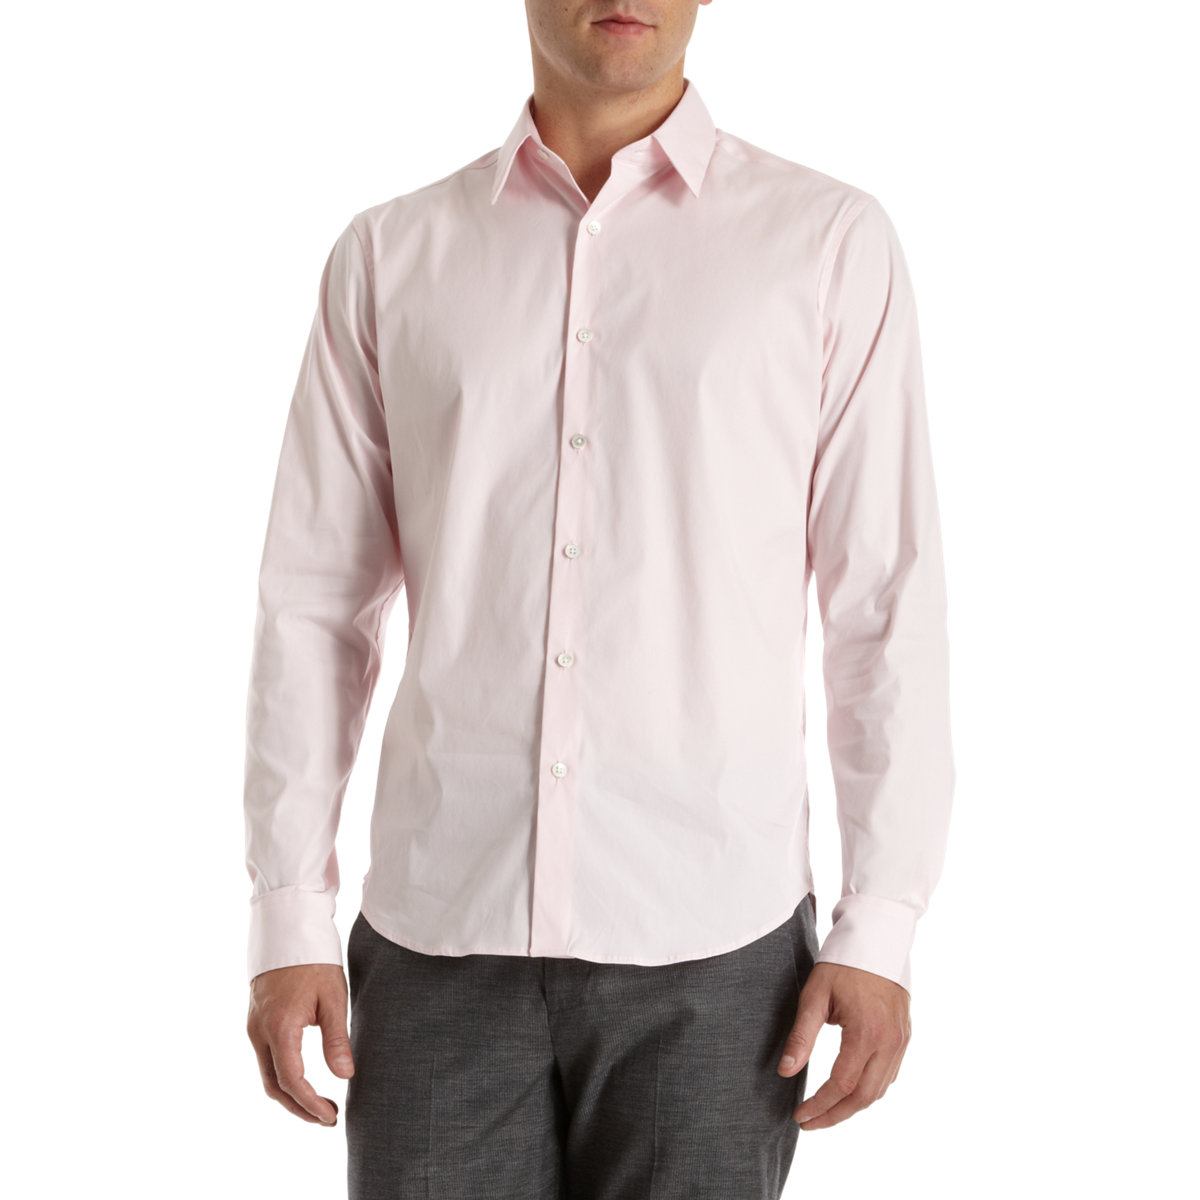 Theory Sylvain Shirt In Pink For Men Lyst